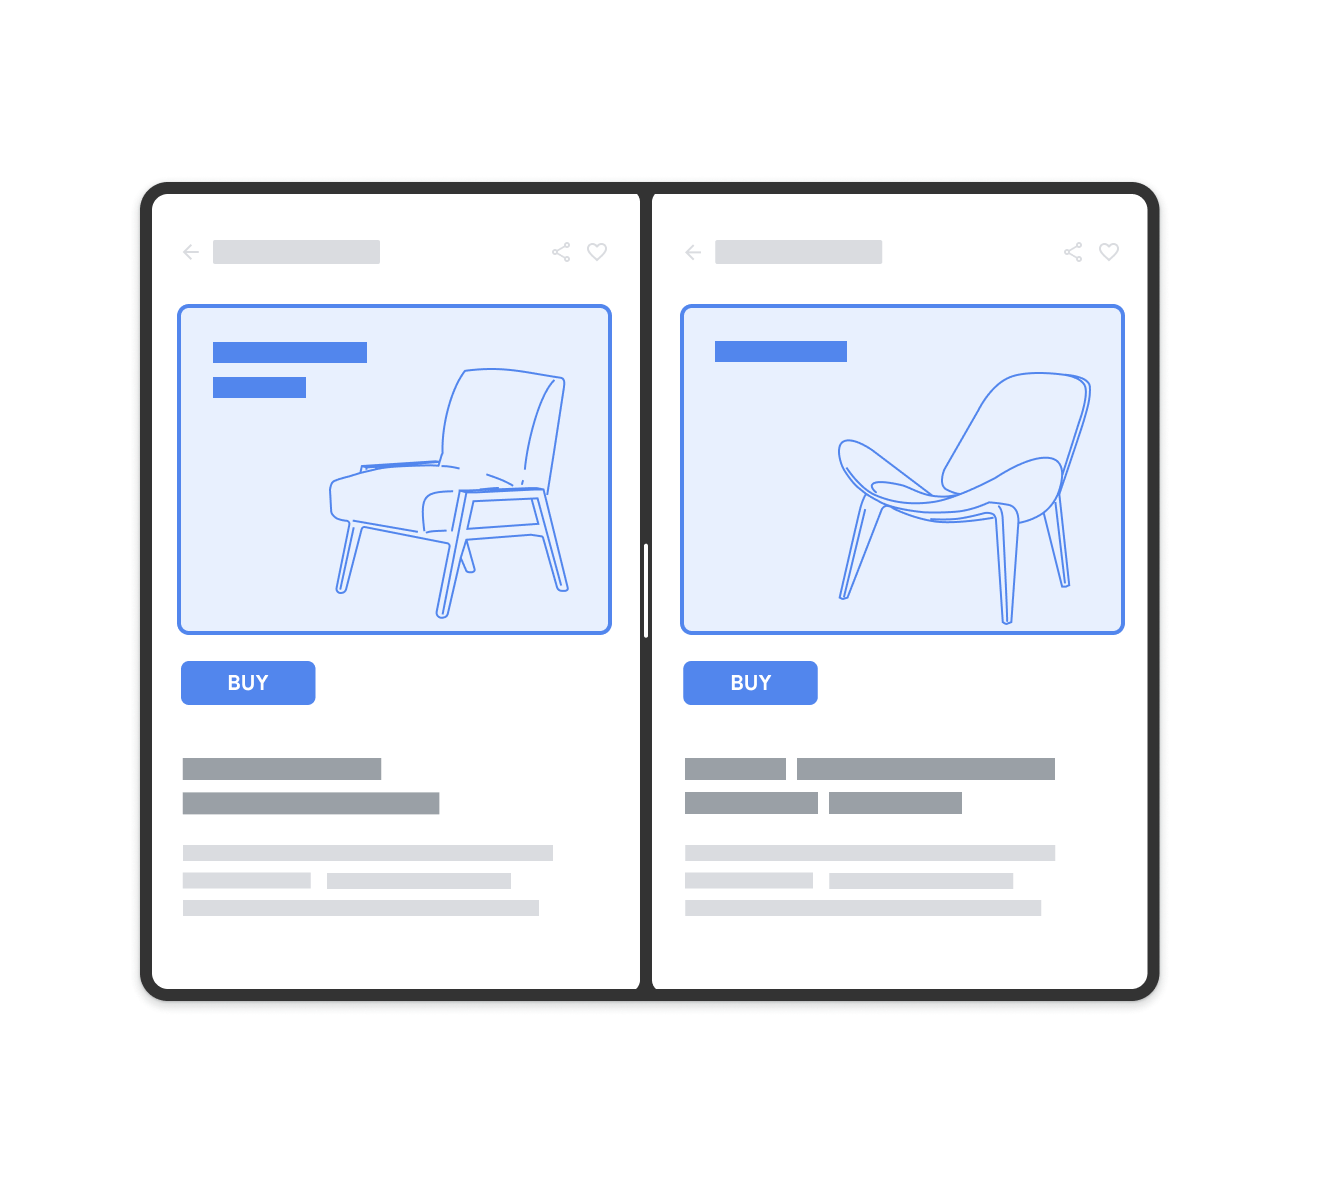 By enabling multiple instance support, users can run multiple copies of your   app side-by-side. The let's users compare two products, reference notes   while writing a document or maybe keeping your calendar in view as you are   planning an event.